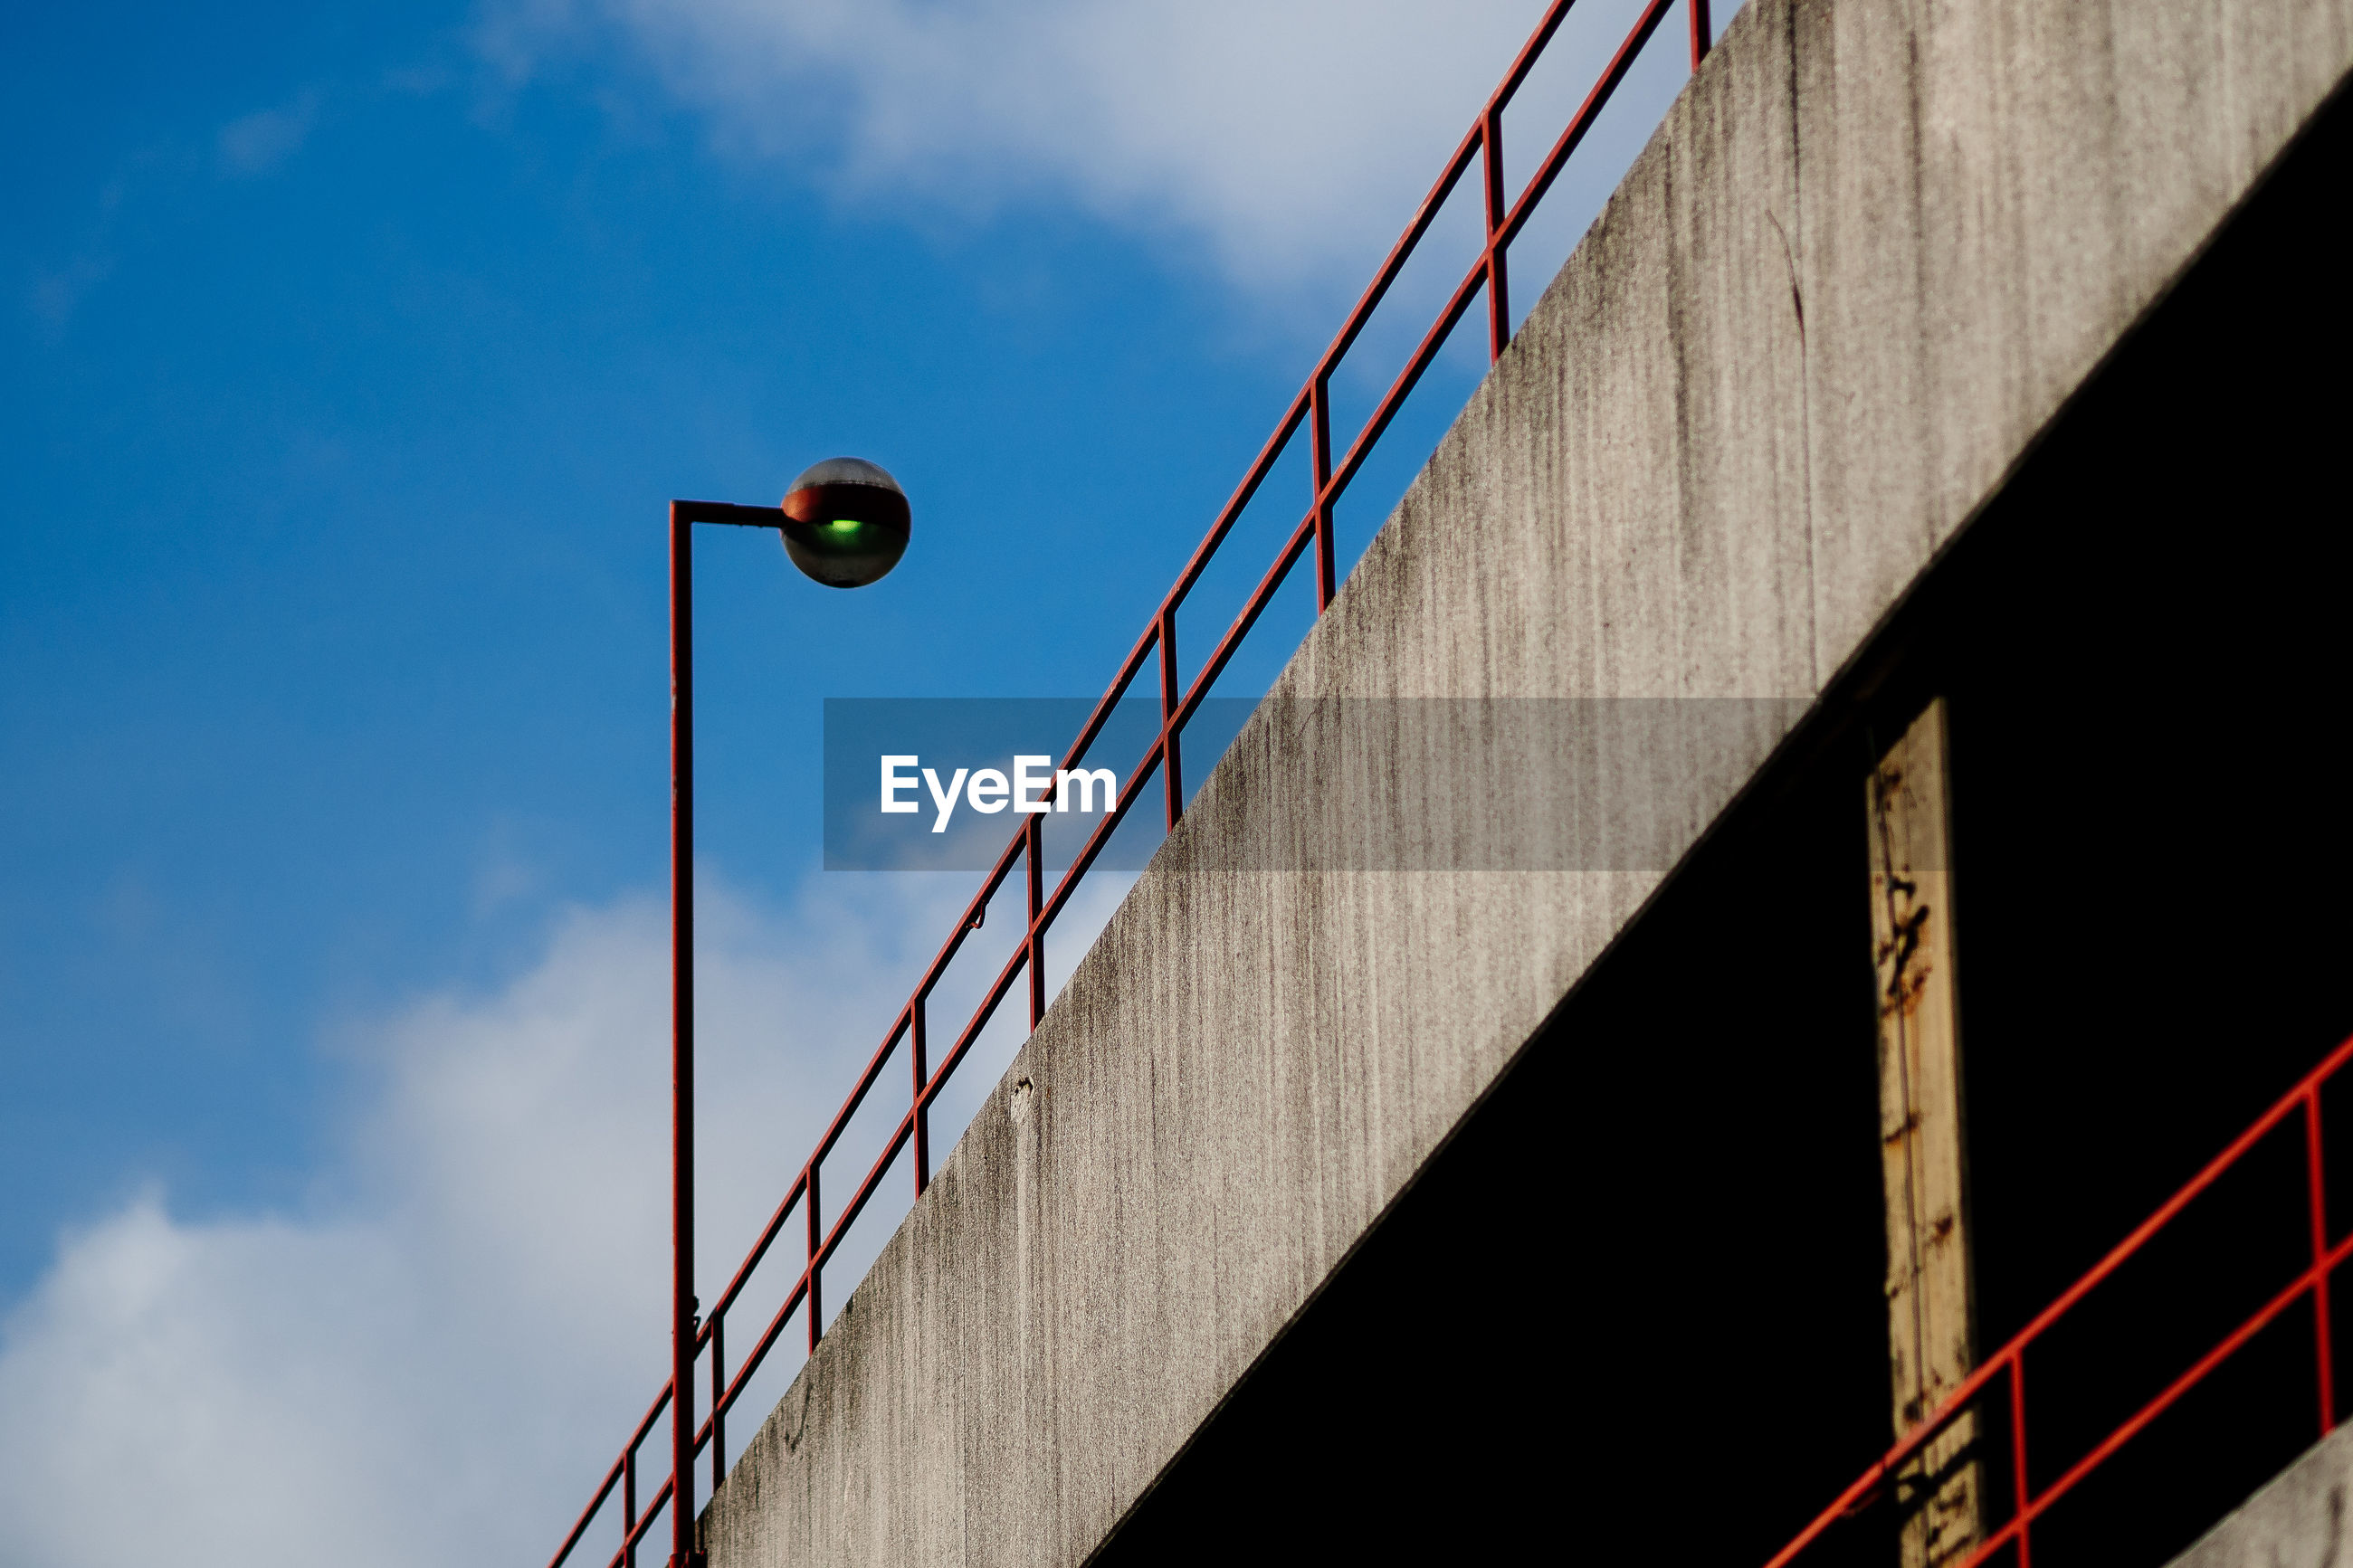 Low angle view of street light by bridge against sky